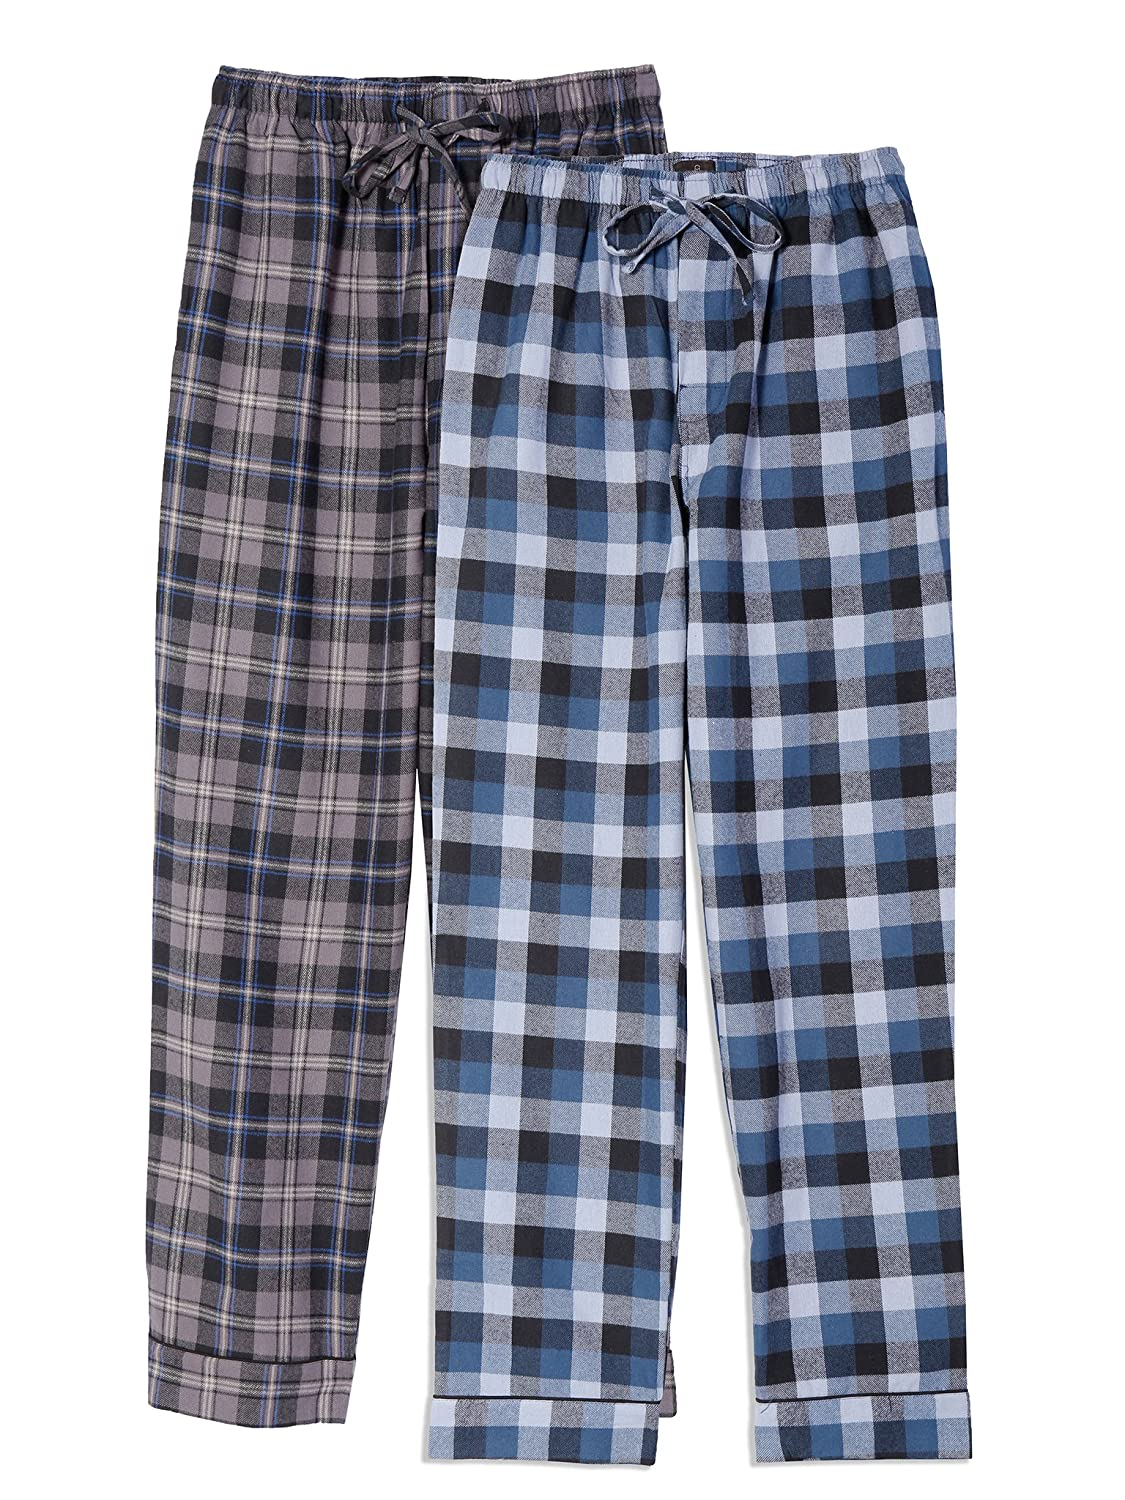 Noble Mount Mens 100% Cotton Flannel Lounge Pants